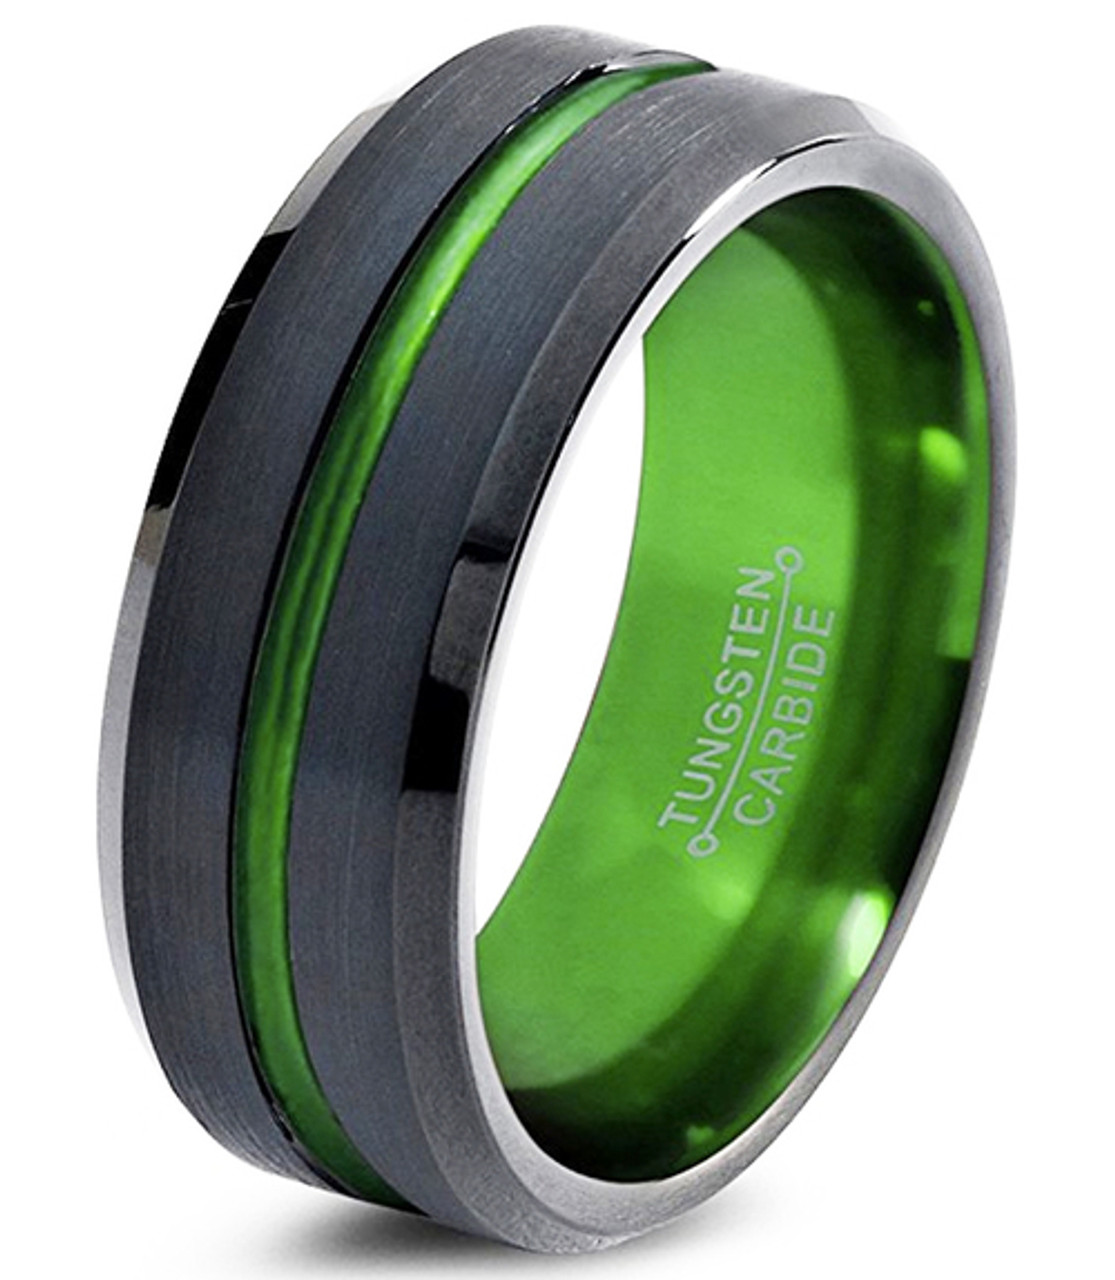 456b3022eee94 (8mm) Unisex or Men's Black and Green Groove Line Matte Finish Tungsten  Carbide Wedding Ring Band with Beveled Edges